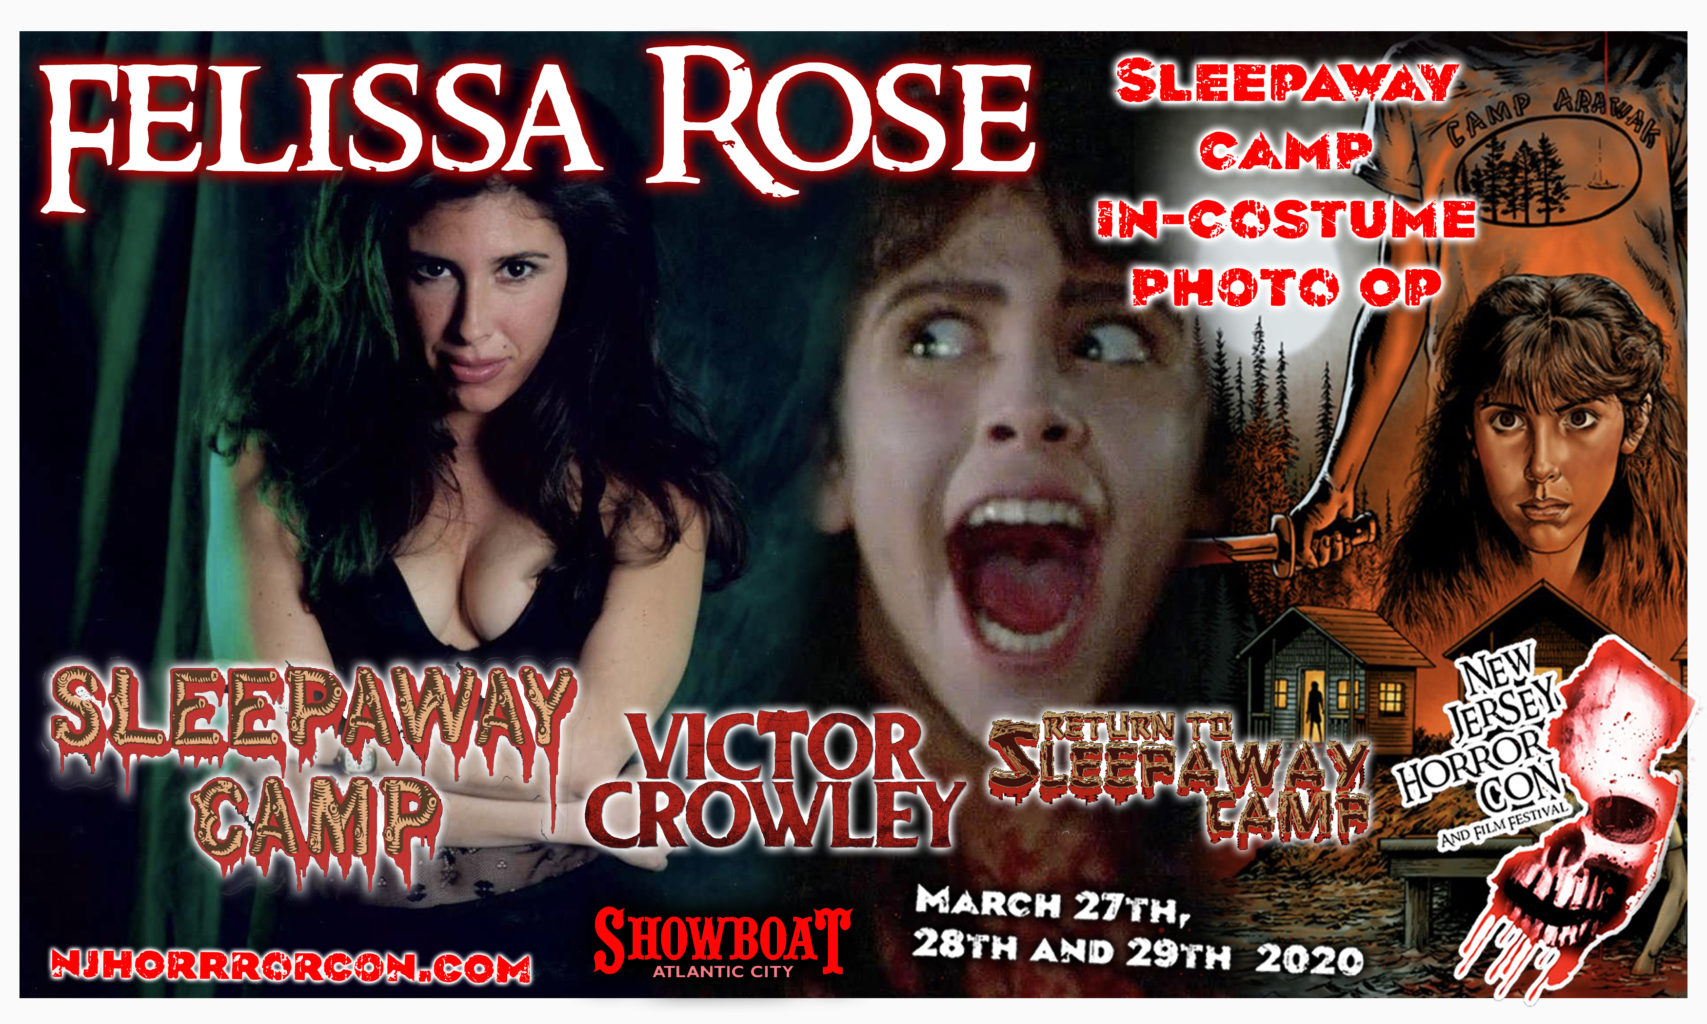 felissa-rose-2020-in-costume